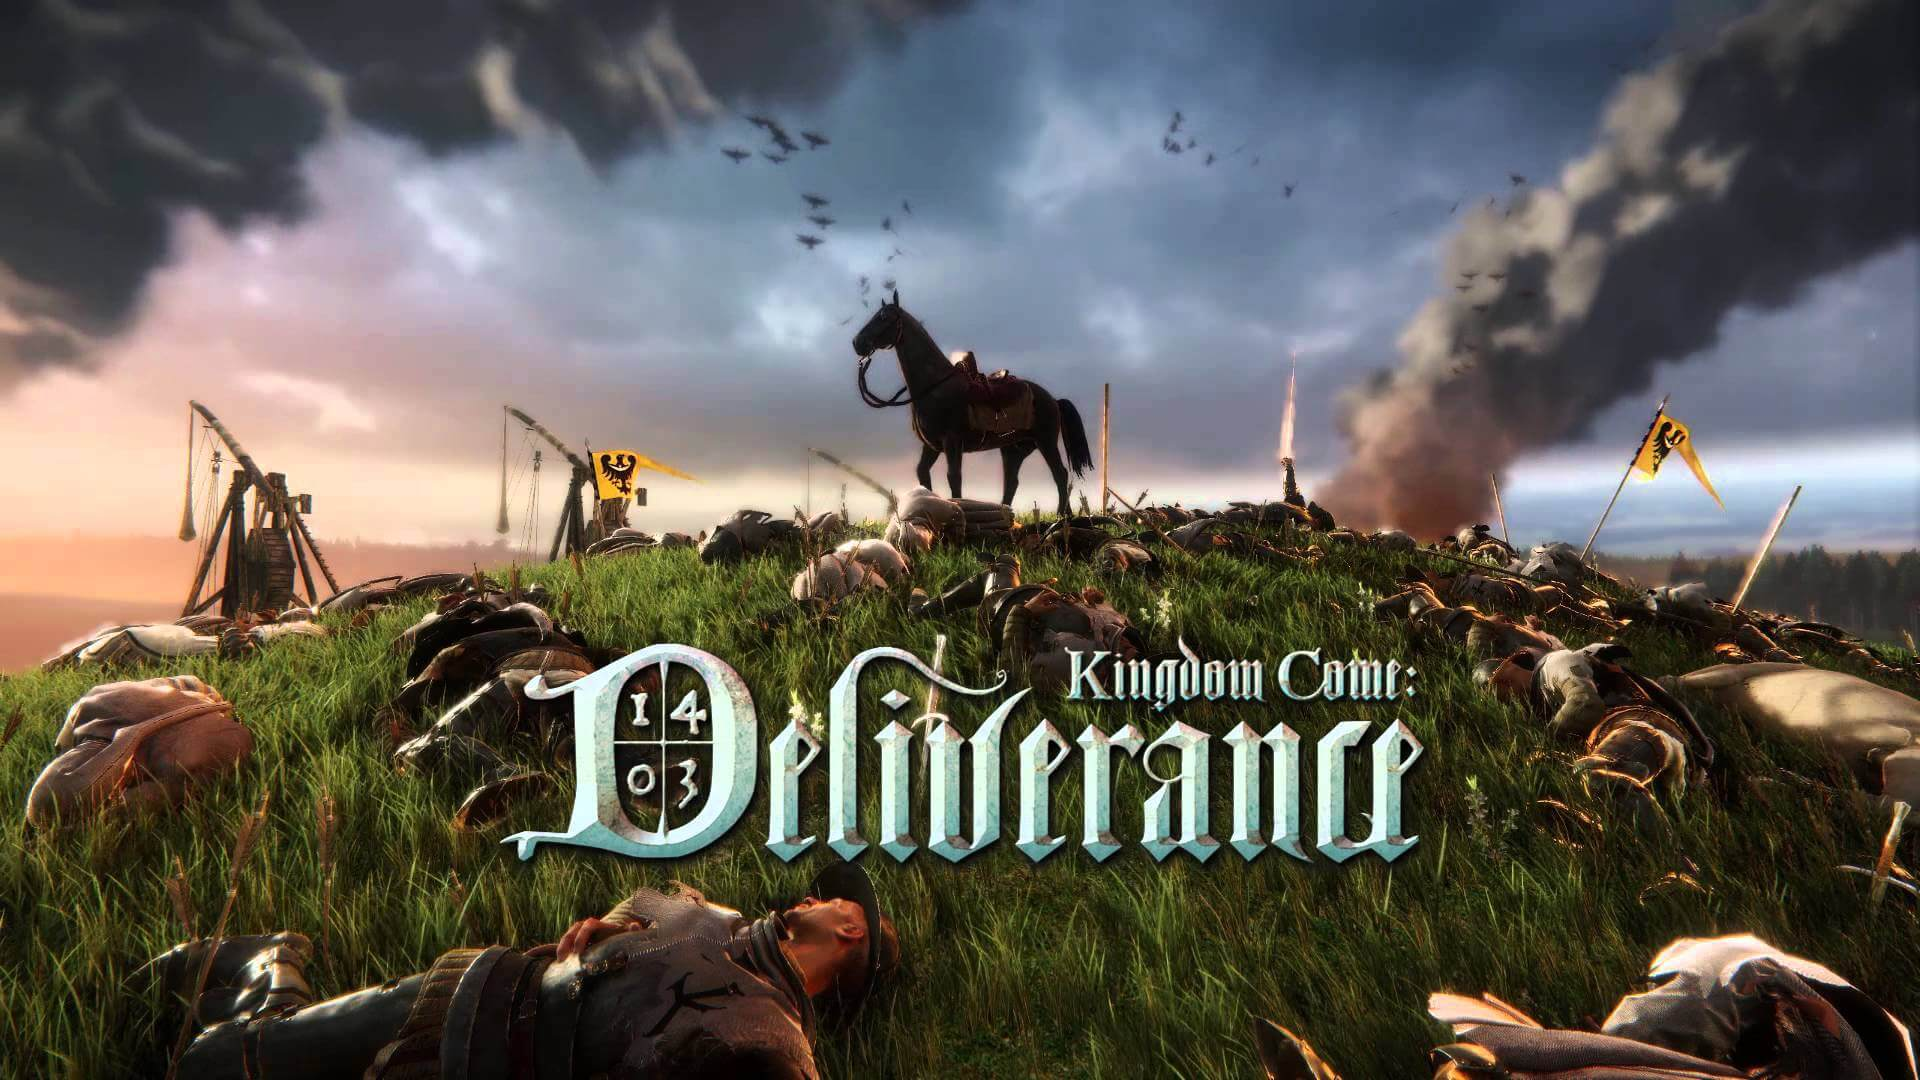 Kingdom Come Deliverance Download Crack Free + Torrent